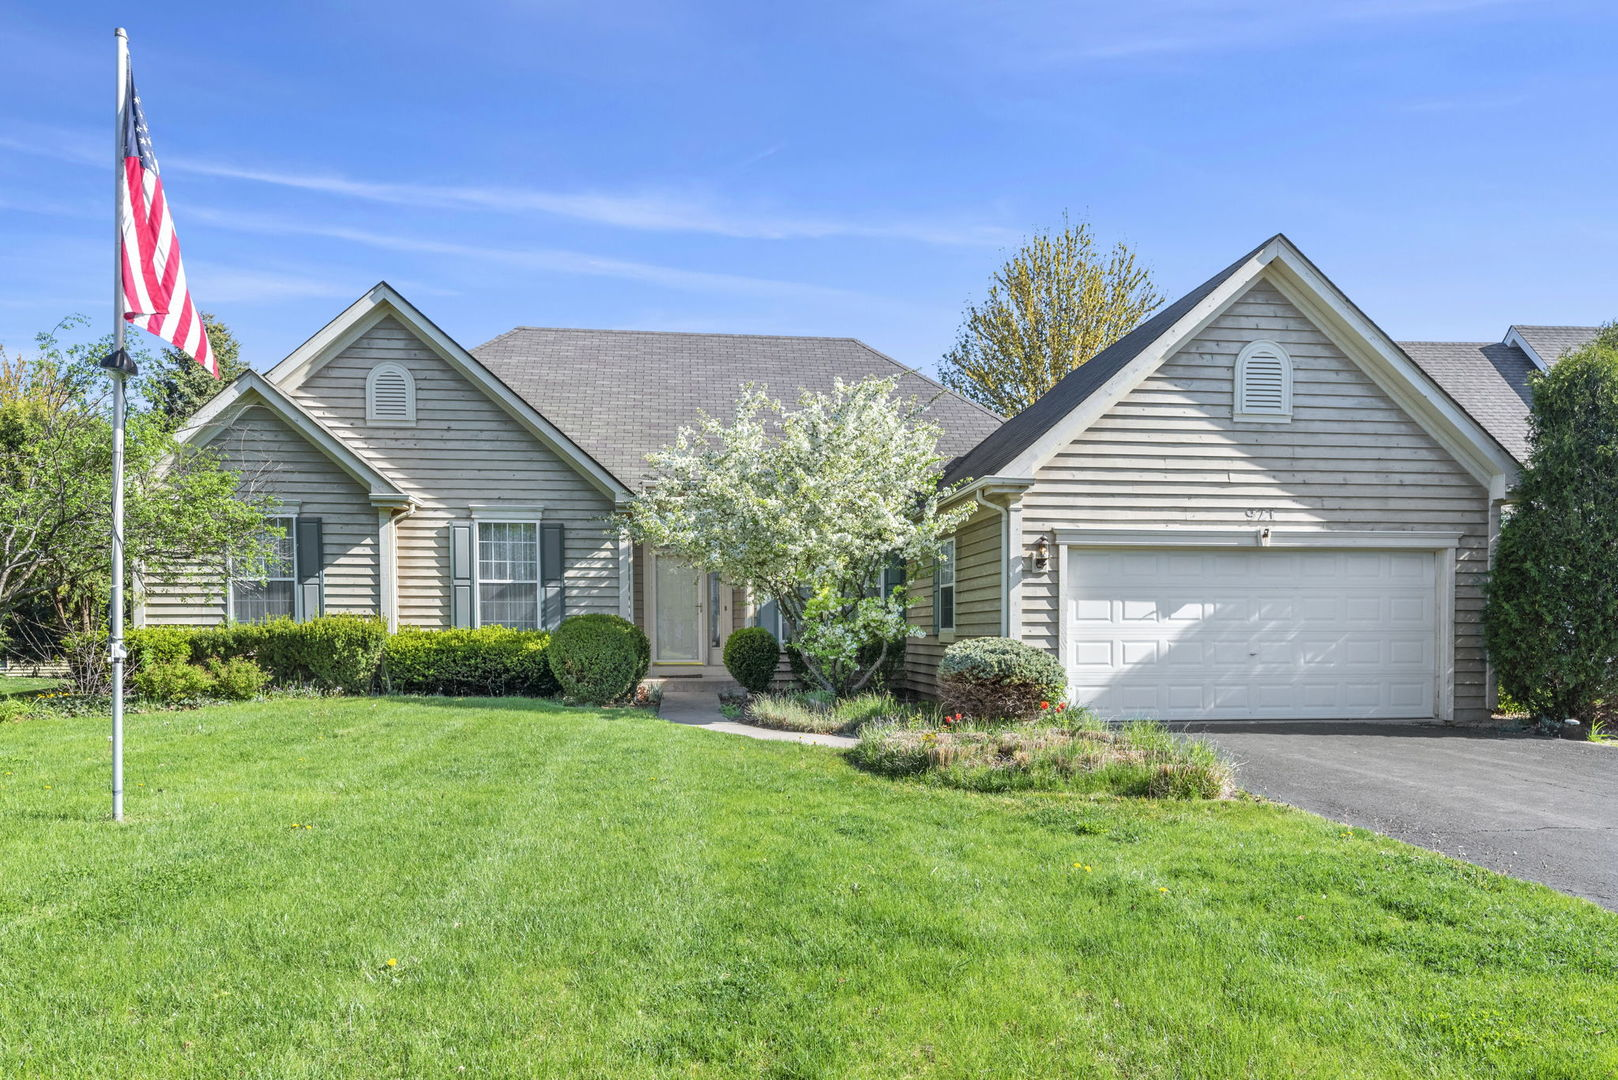 Spectacular Value! Sprawling ranch in desirable Hampton Hills subdivision is the BEST BUY IN TOWN!  Kitchen with ample white cabinetry, granite countertops, breakfast bar and eating area that walks out to a brick paver patio. Awesome 20x14 great room is light and bright and has vaulted ceilings, skylights and handsome WB fireplace. 15x11 formal dining room offers expansive table space. 3 nice sized main level bedrooms and 2 full baths. Master is 15x13 and has a walk in closet, oversized master bath with double sink, tub and separate shower. Main level laundry room and 2 car attached garage with direct entrance into home. Large unfinished basement can easily be converted to additional living space. Estate Sale: Property Sold As IS.